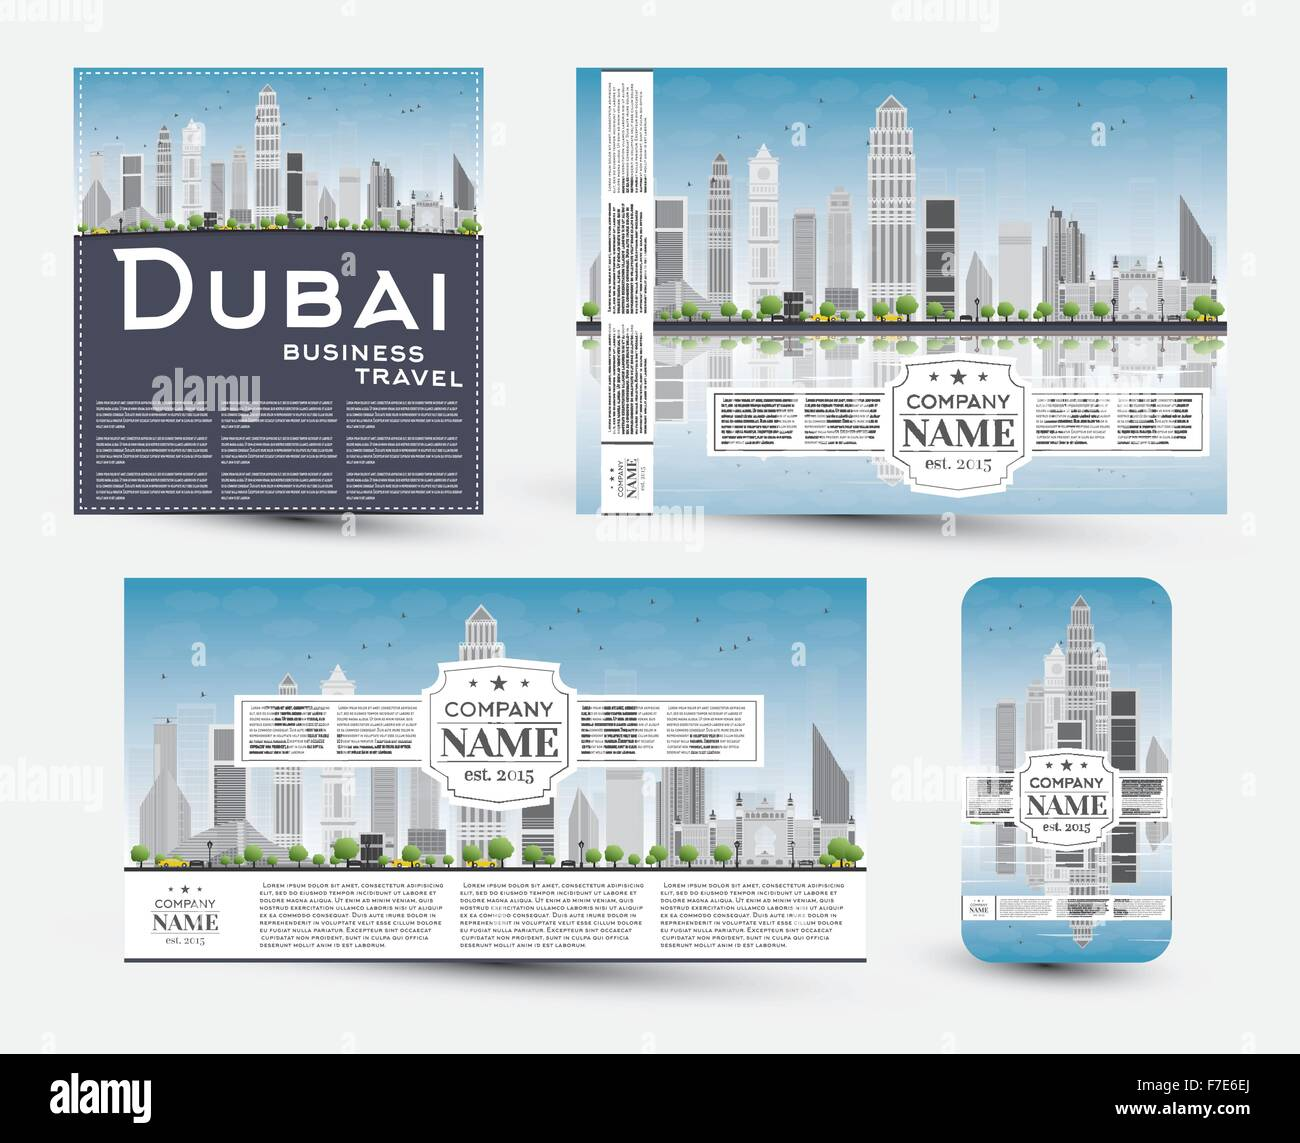 Template business card silhouette skyline stock photos template corporate identity templates set with dubai skyline vector illustration business travel and tourism concept reheart Choice Image